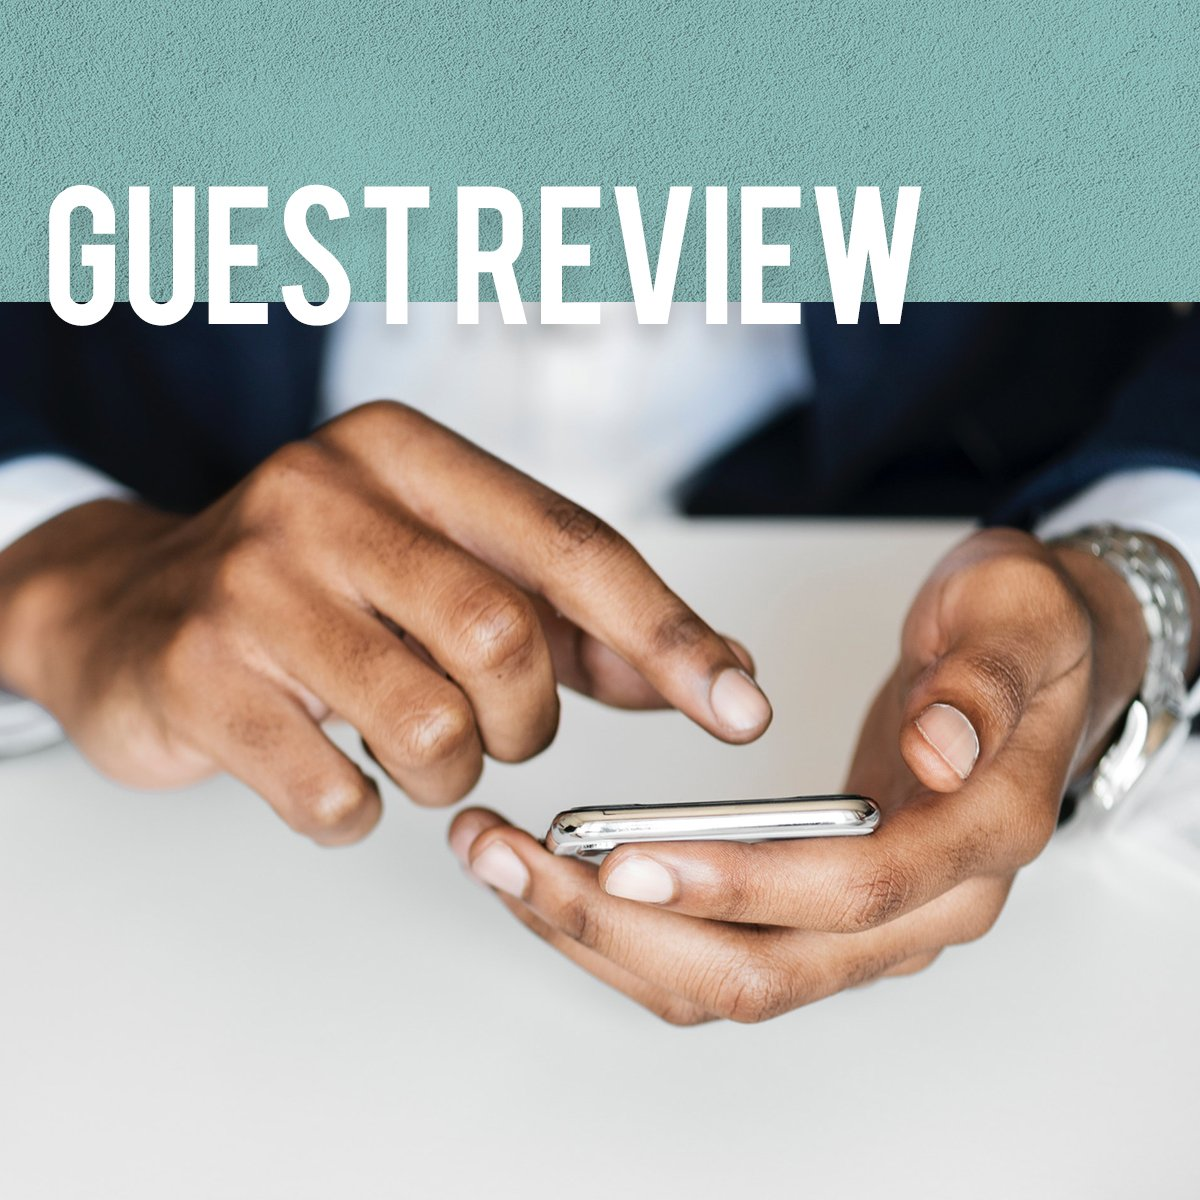 Airbnb Guest Review Template (Positive + Negative) - Passive Airbnb